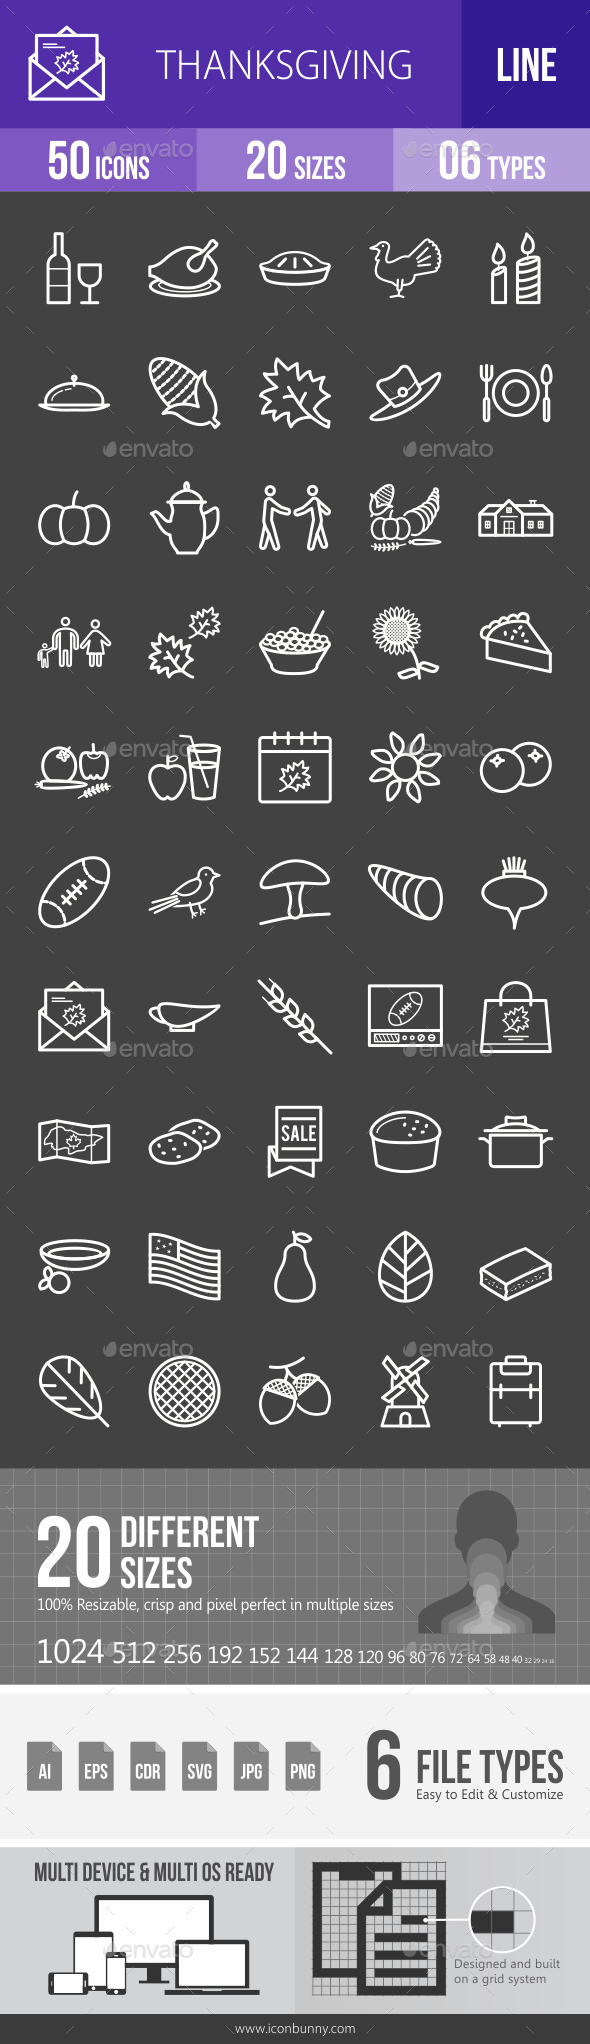 Thanksgiving Line Inverted Icons - Icons